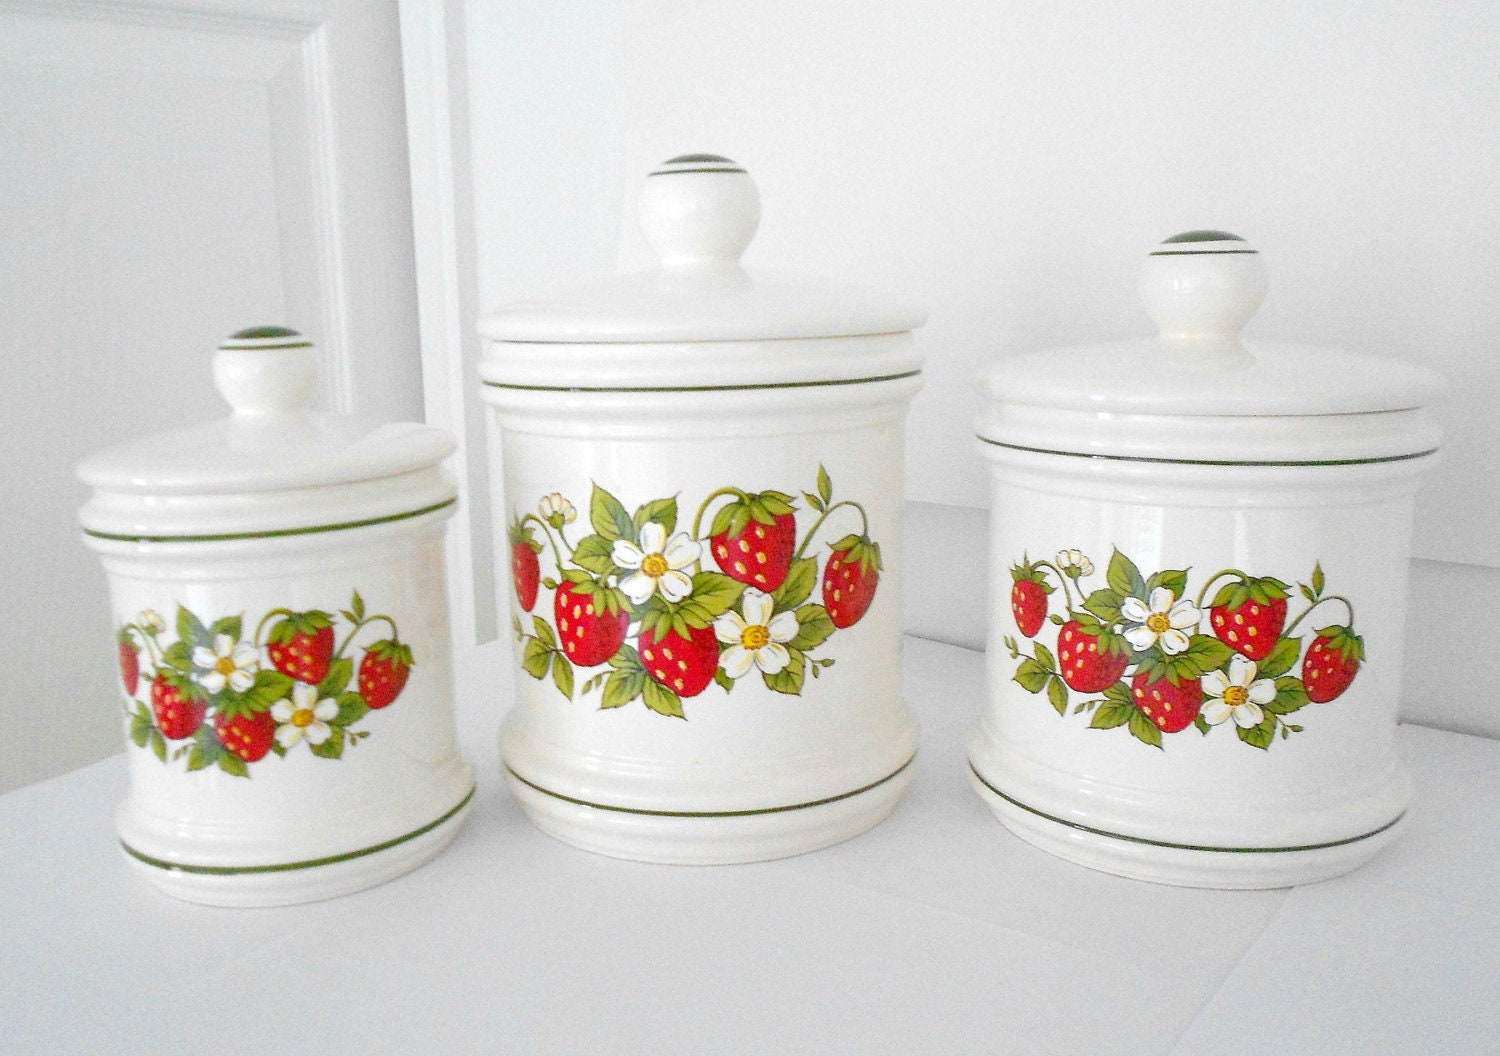 Items Similar To Canisters Strawberry Kitchen Decor Set Of Three On Etsy